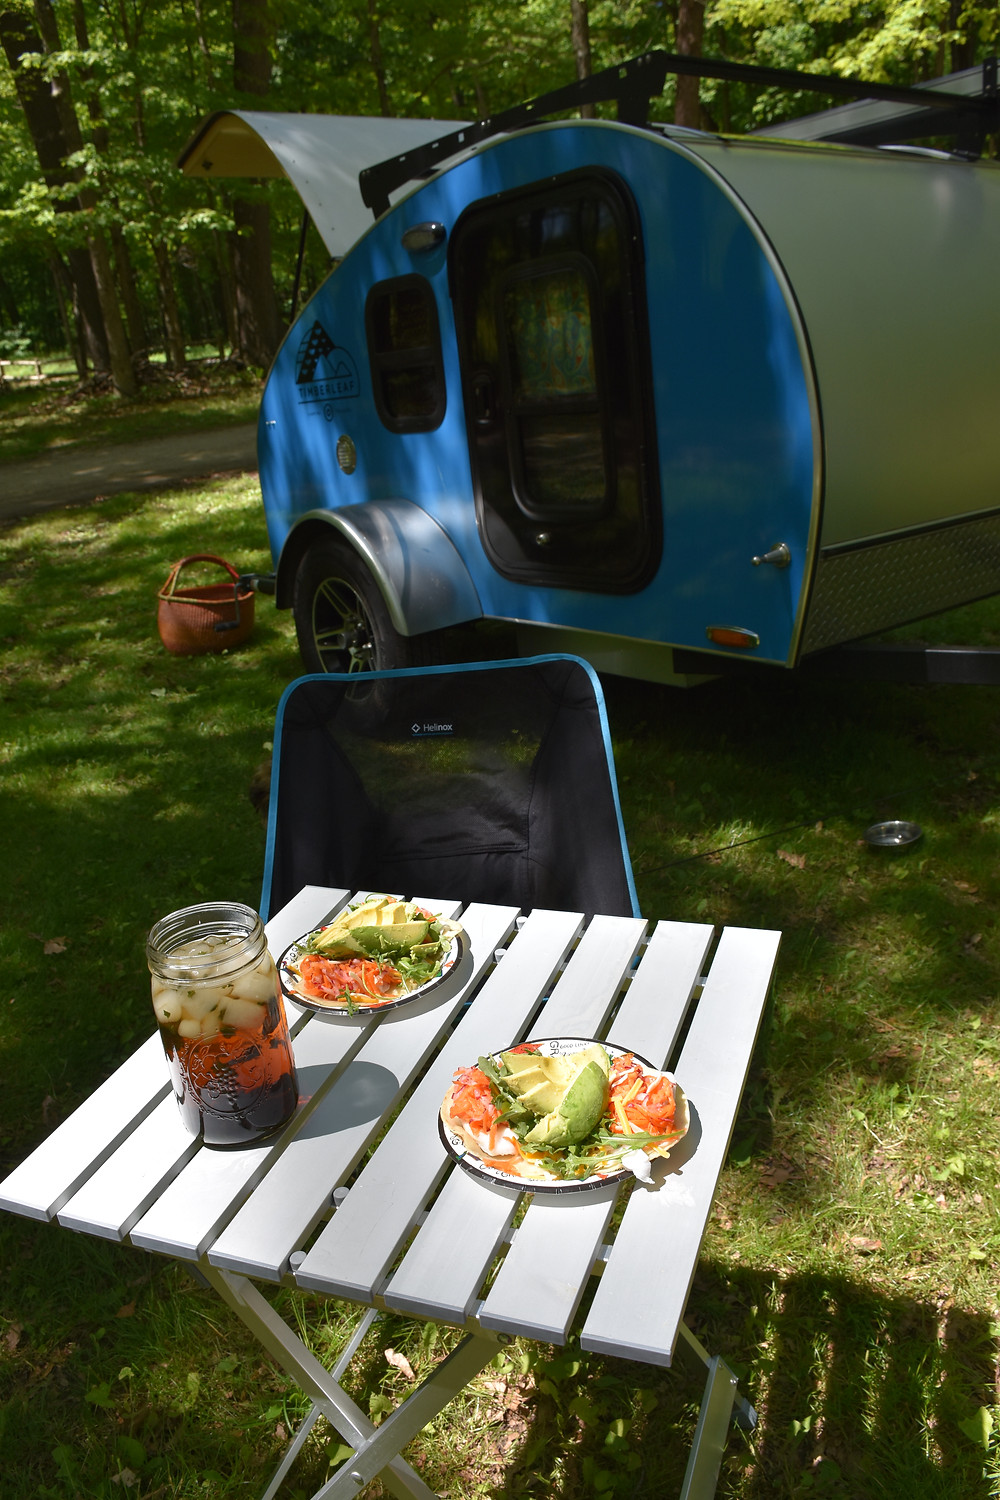 A recent meal with our teardrop and Helinox chair